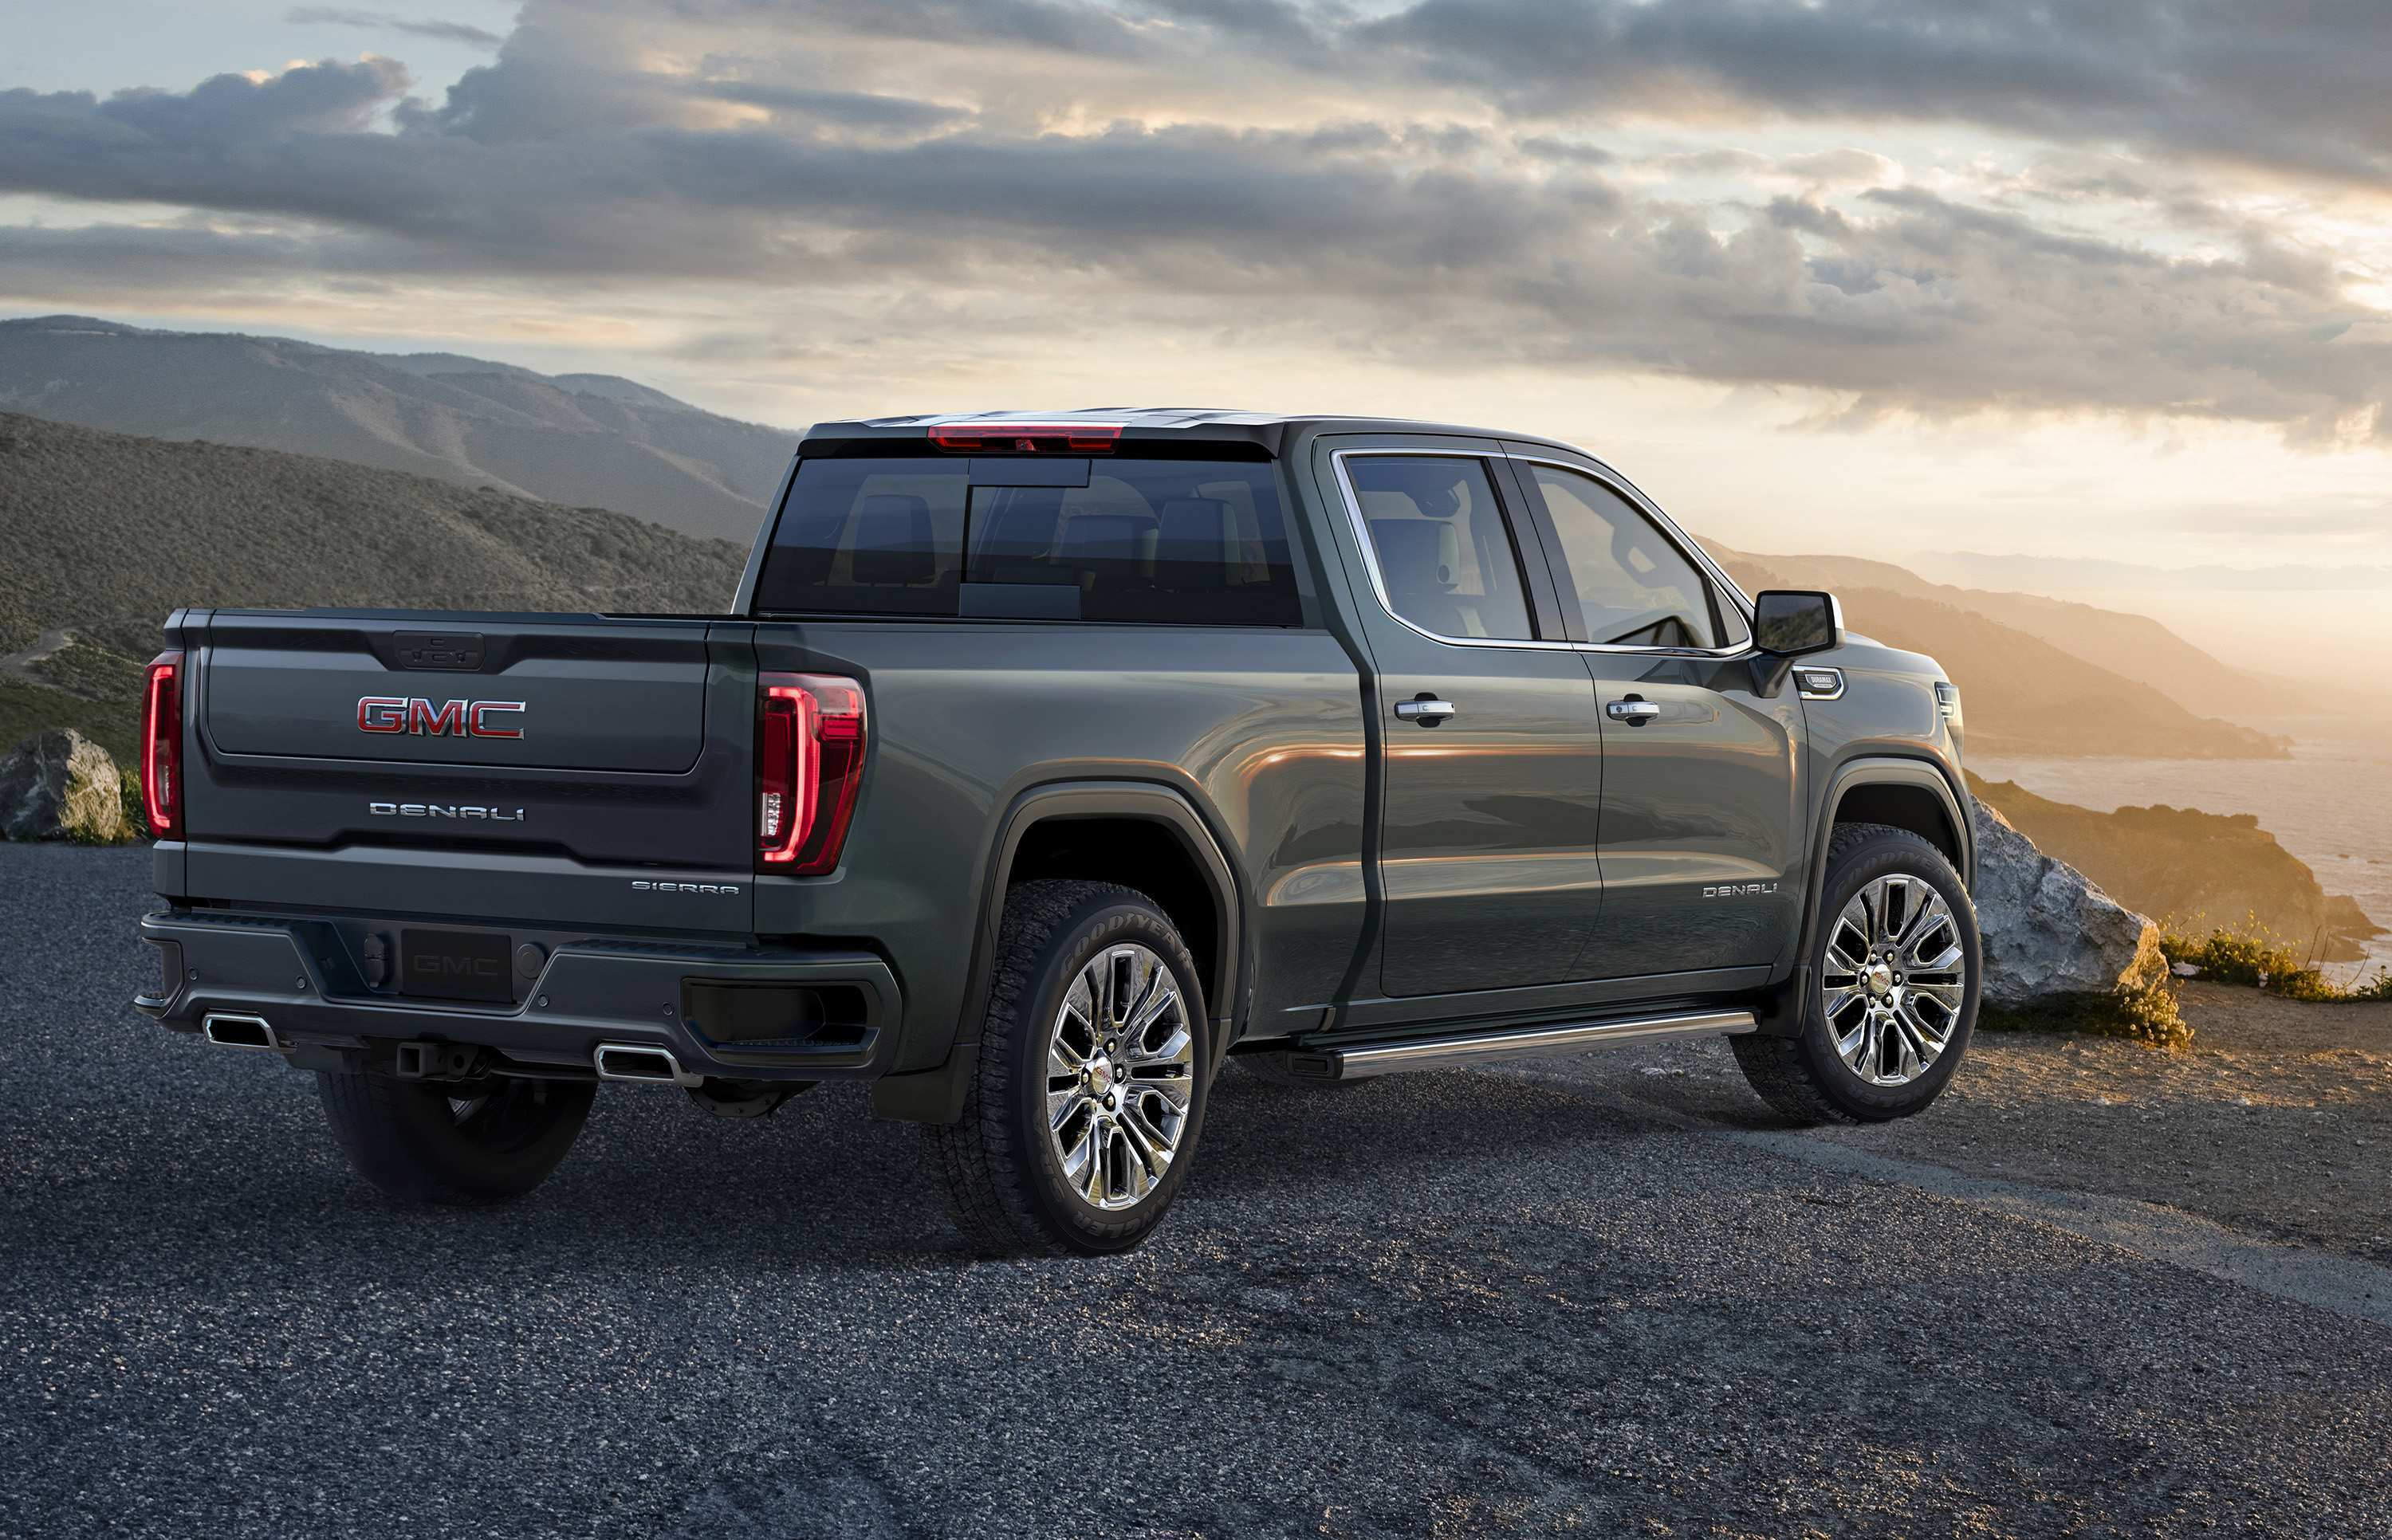 53 All New 2019 Gmc Engine Specs Prices by 2019 Gmc Engine Specs